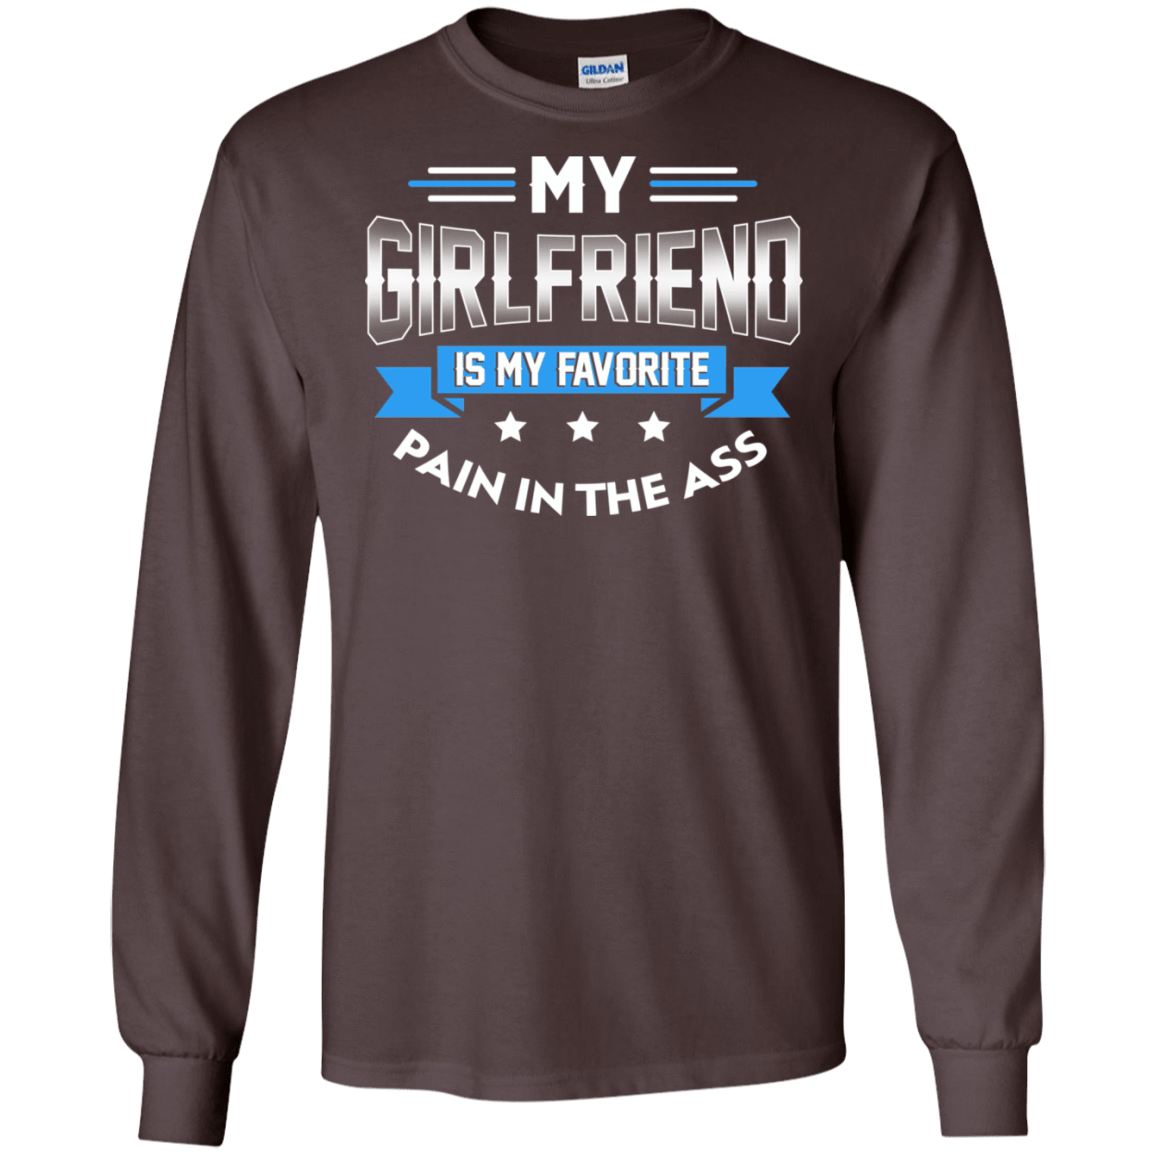 My Girlfriend Is My Favorite Pain In The Ass 30-2107-73428844-10724 - Tee Ript